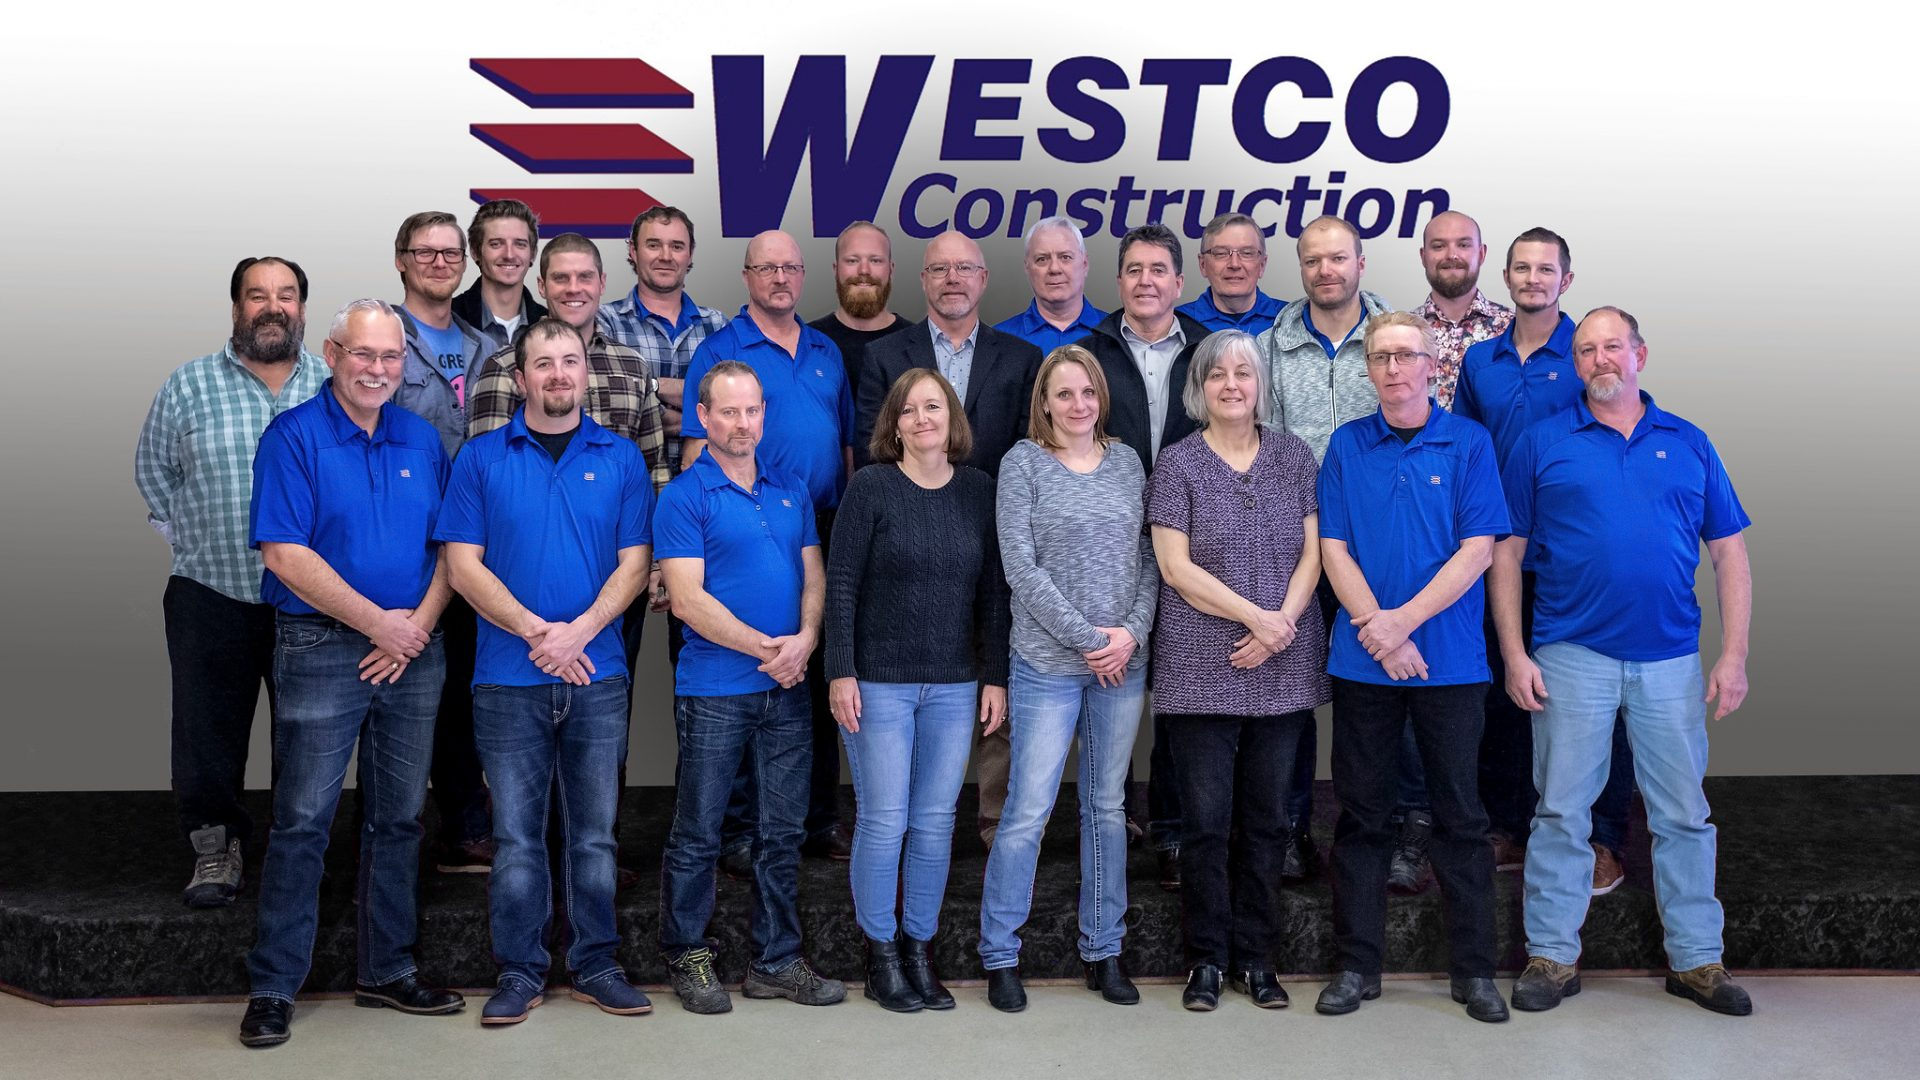 Group Photo - Westco Construction